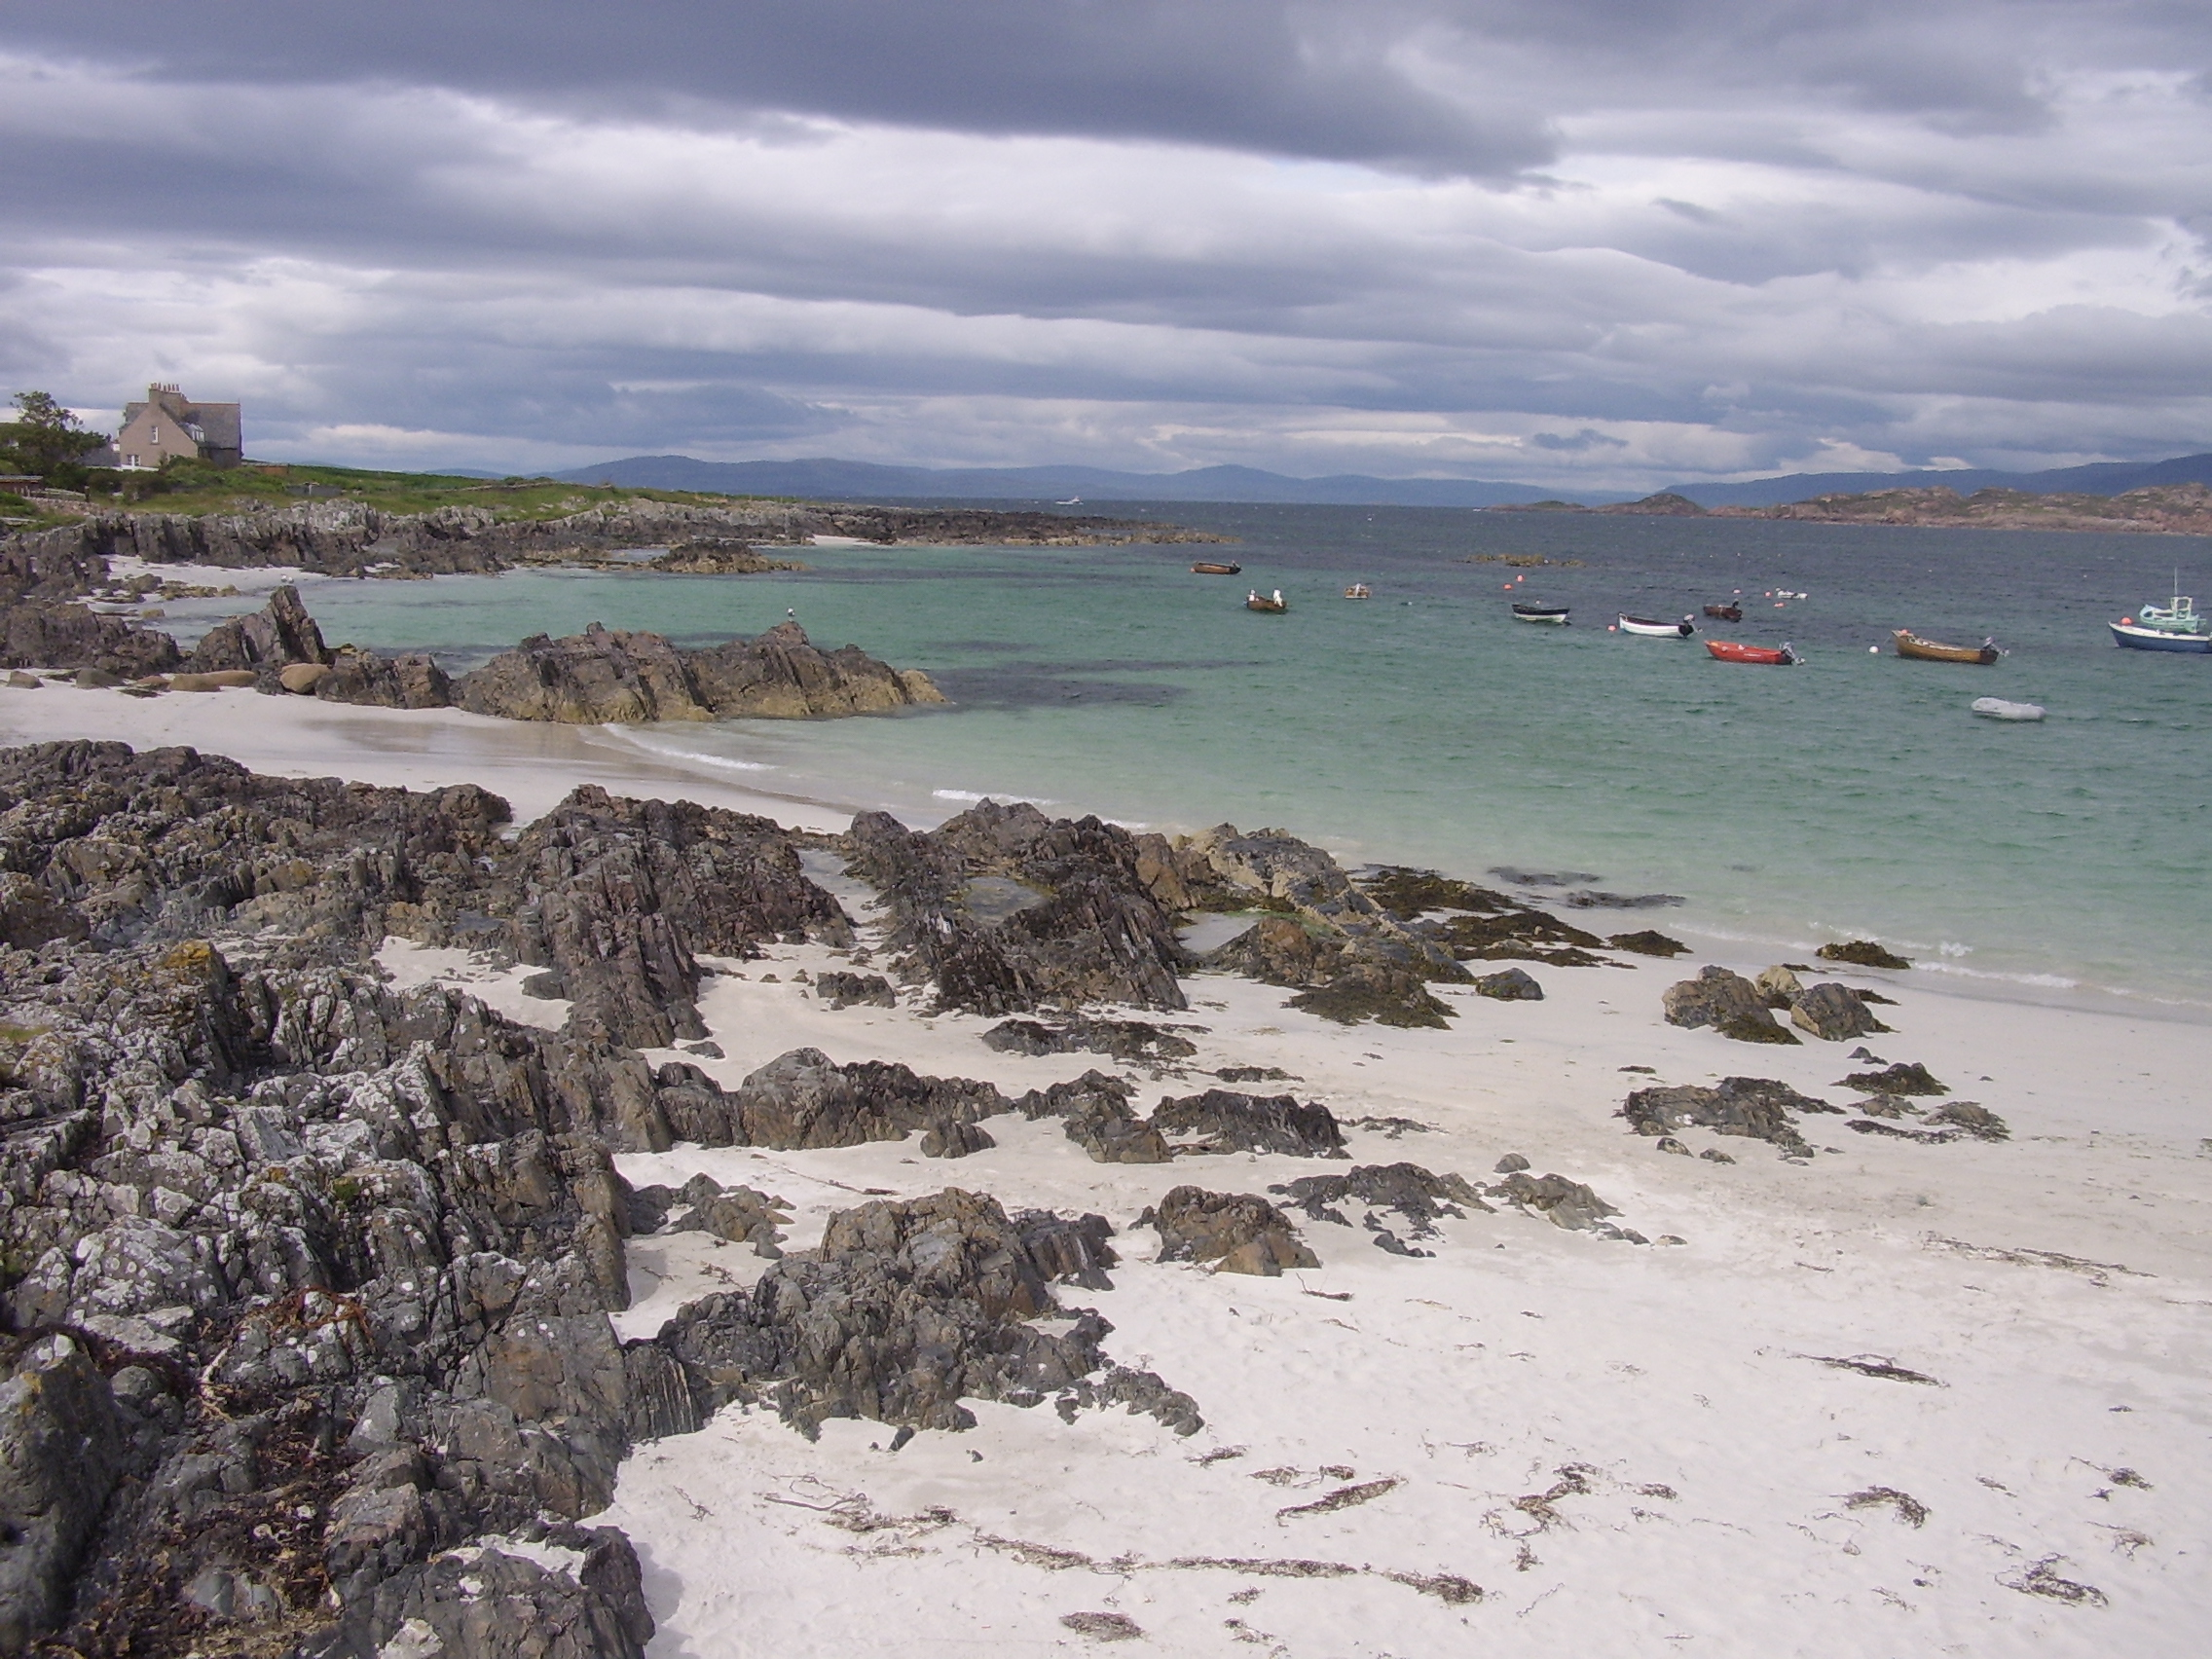 Image of the beach at Iona